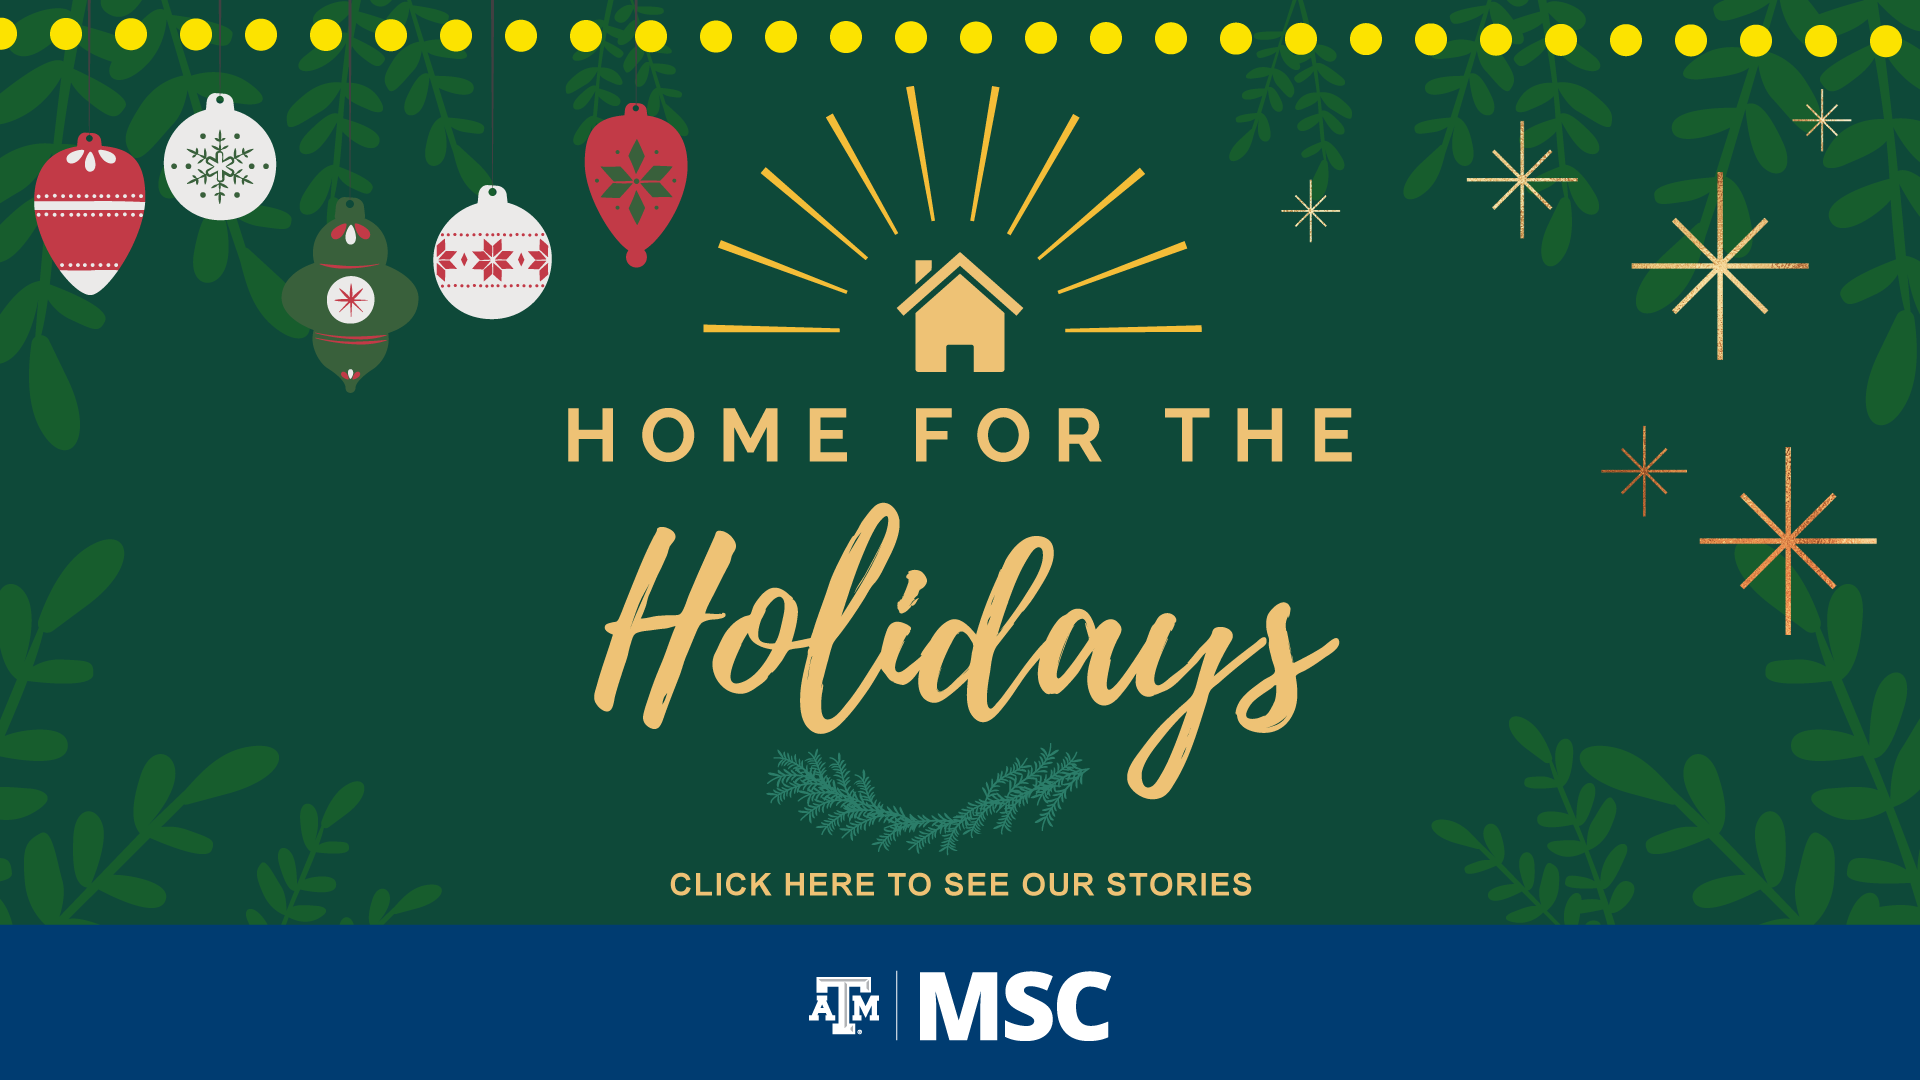 Home For the Holidays, click here to visit our instagram and watch our stories